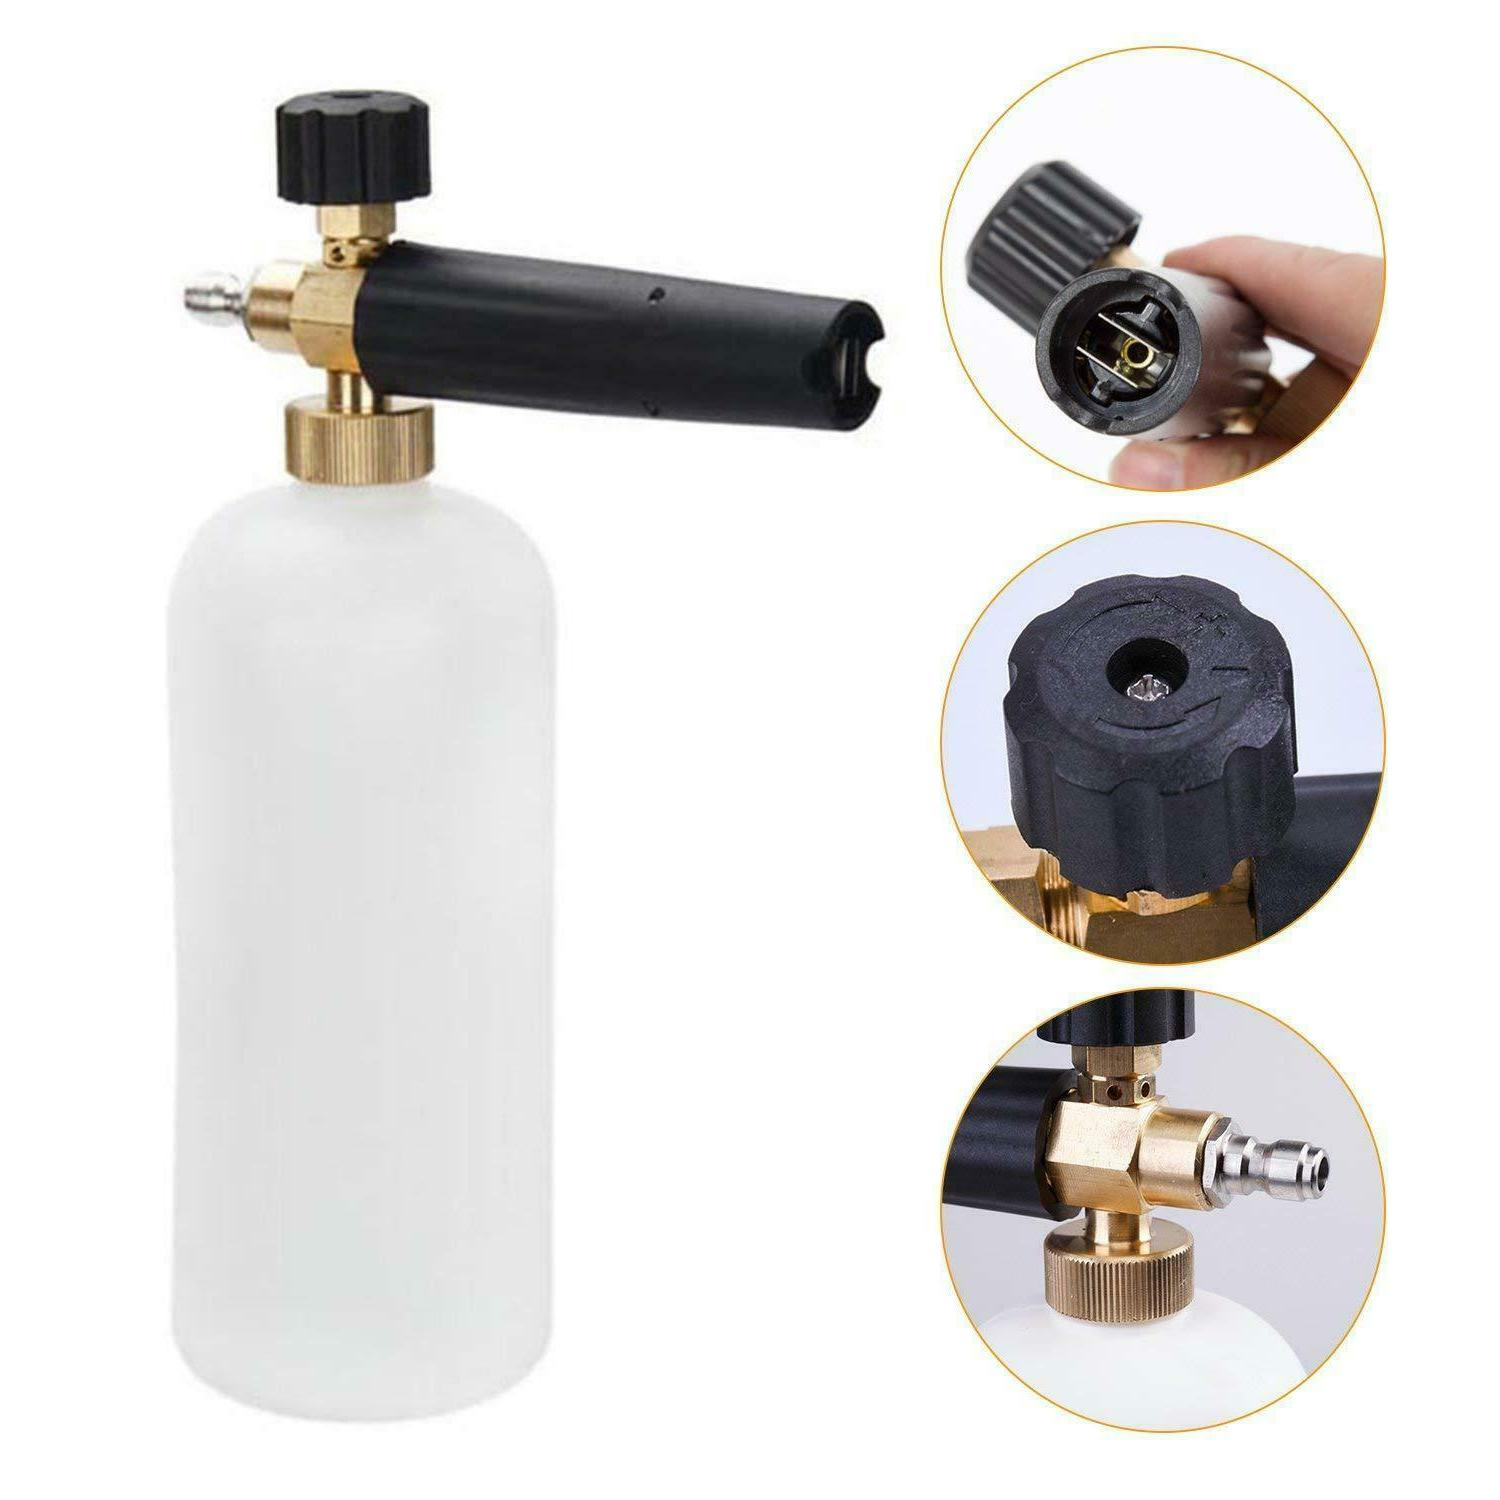 Snow Cannon Soap Bottle Sprayer For Pressure Washer Car Wash